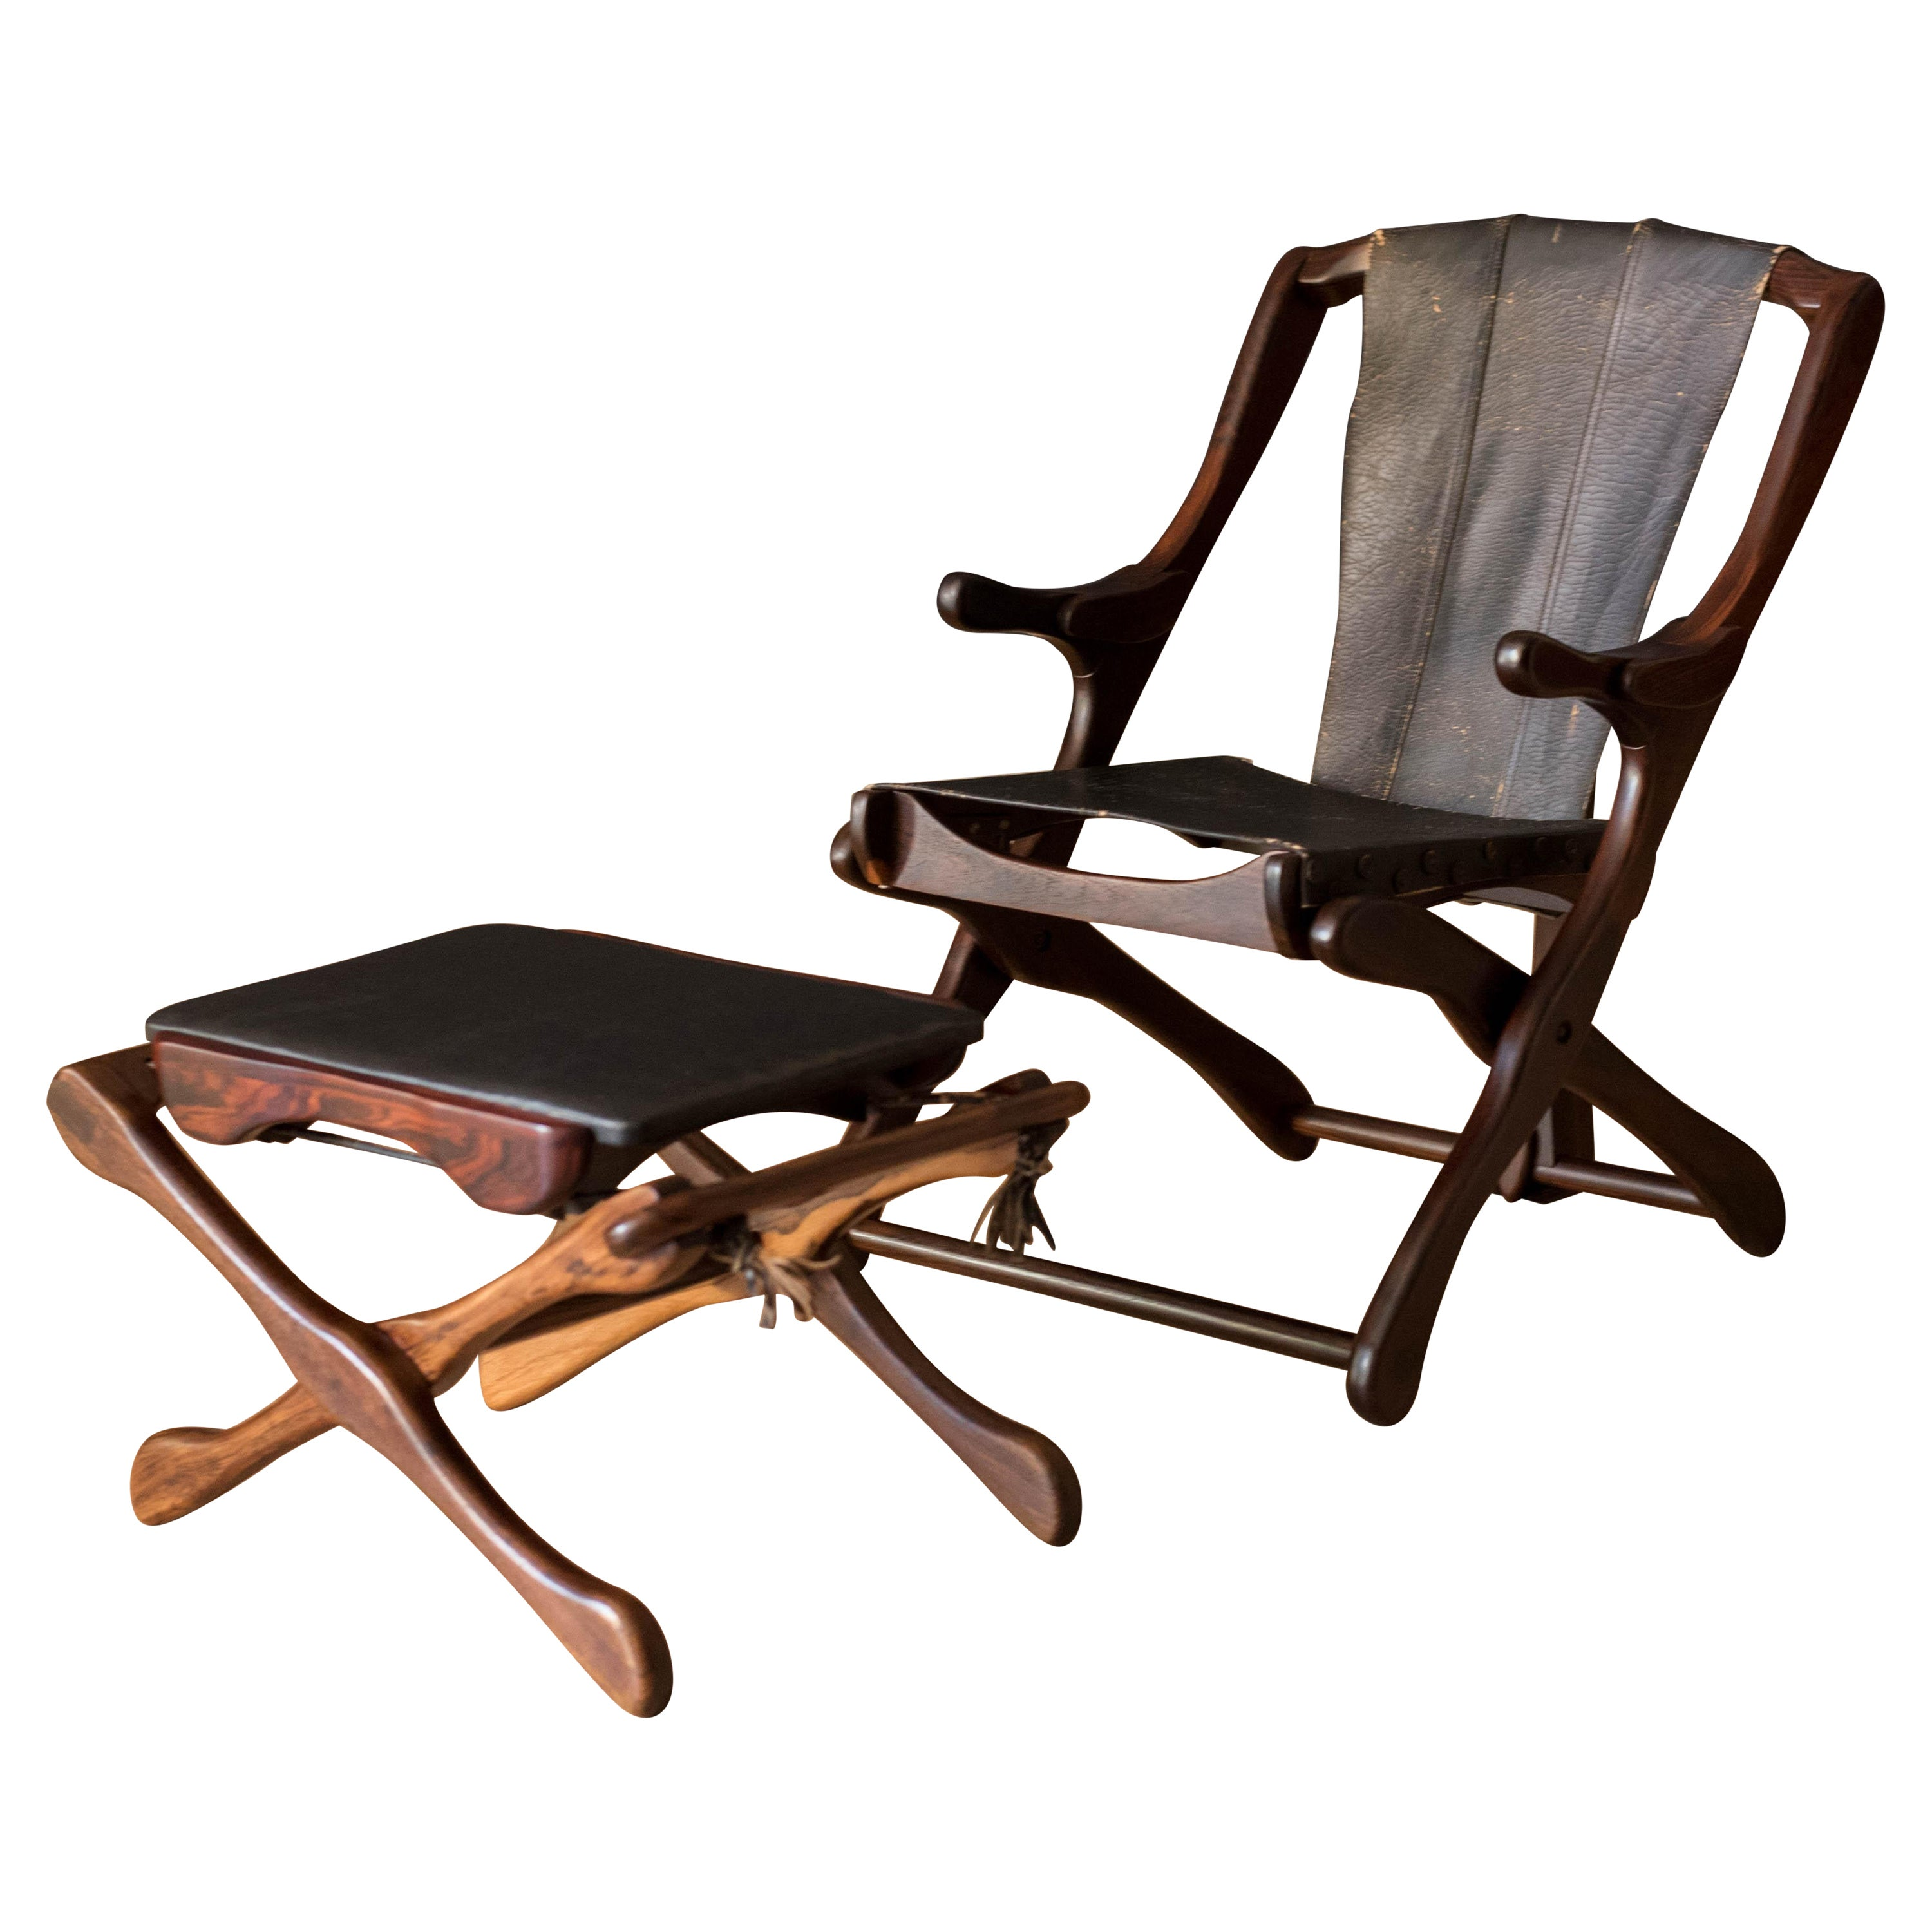 Sculptural Cocobolo Rosewood Leather Lounge Chair and Ottoman by Don Shoemaker